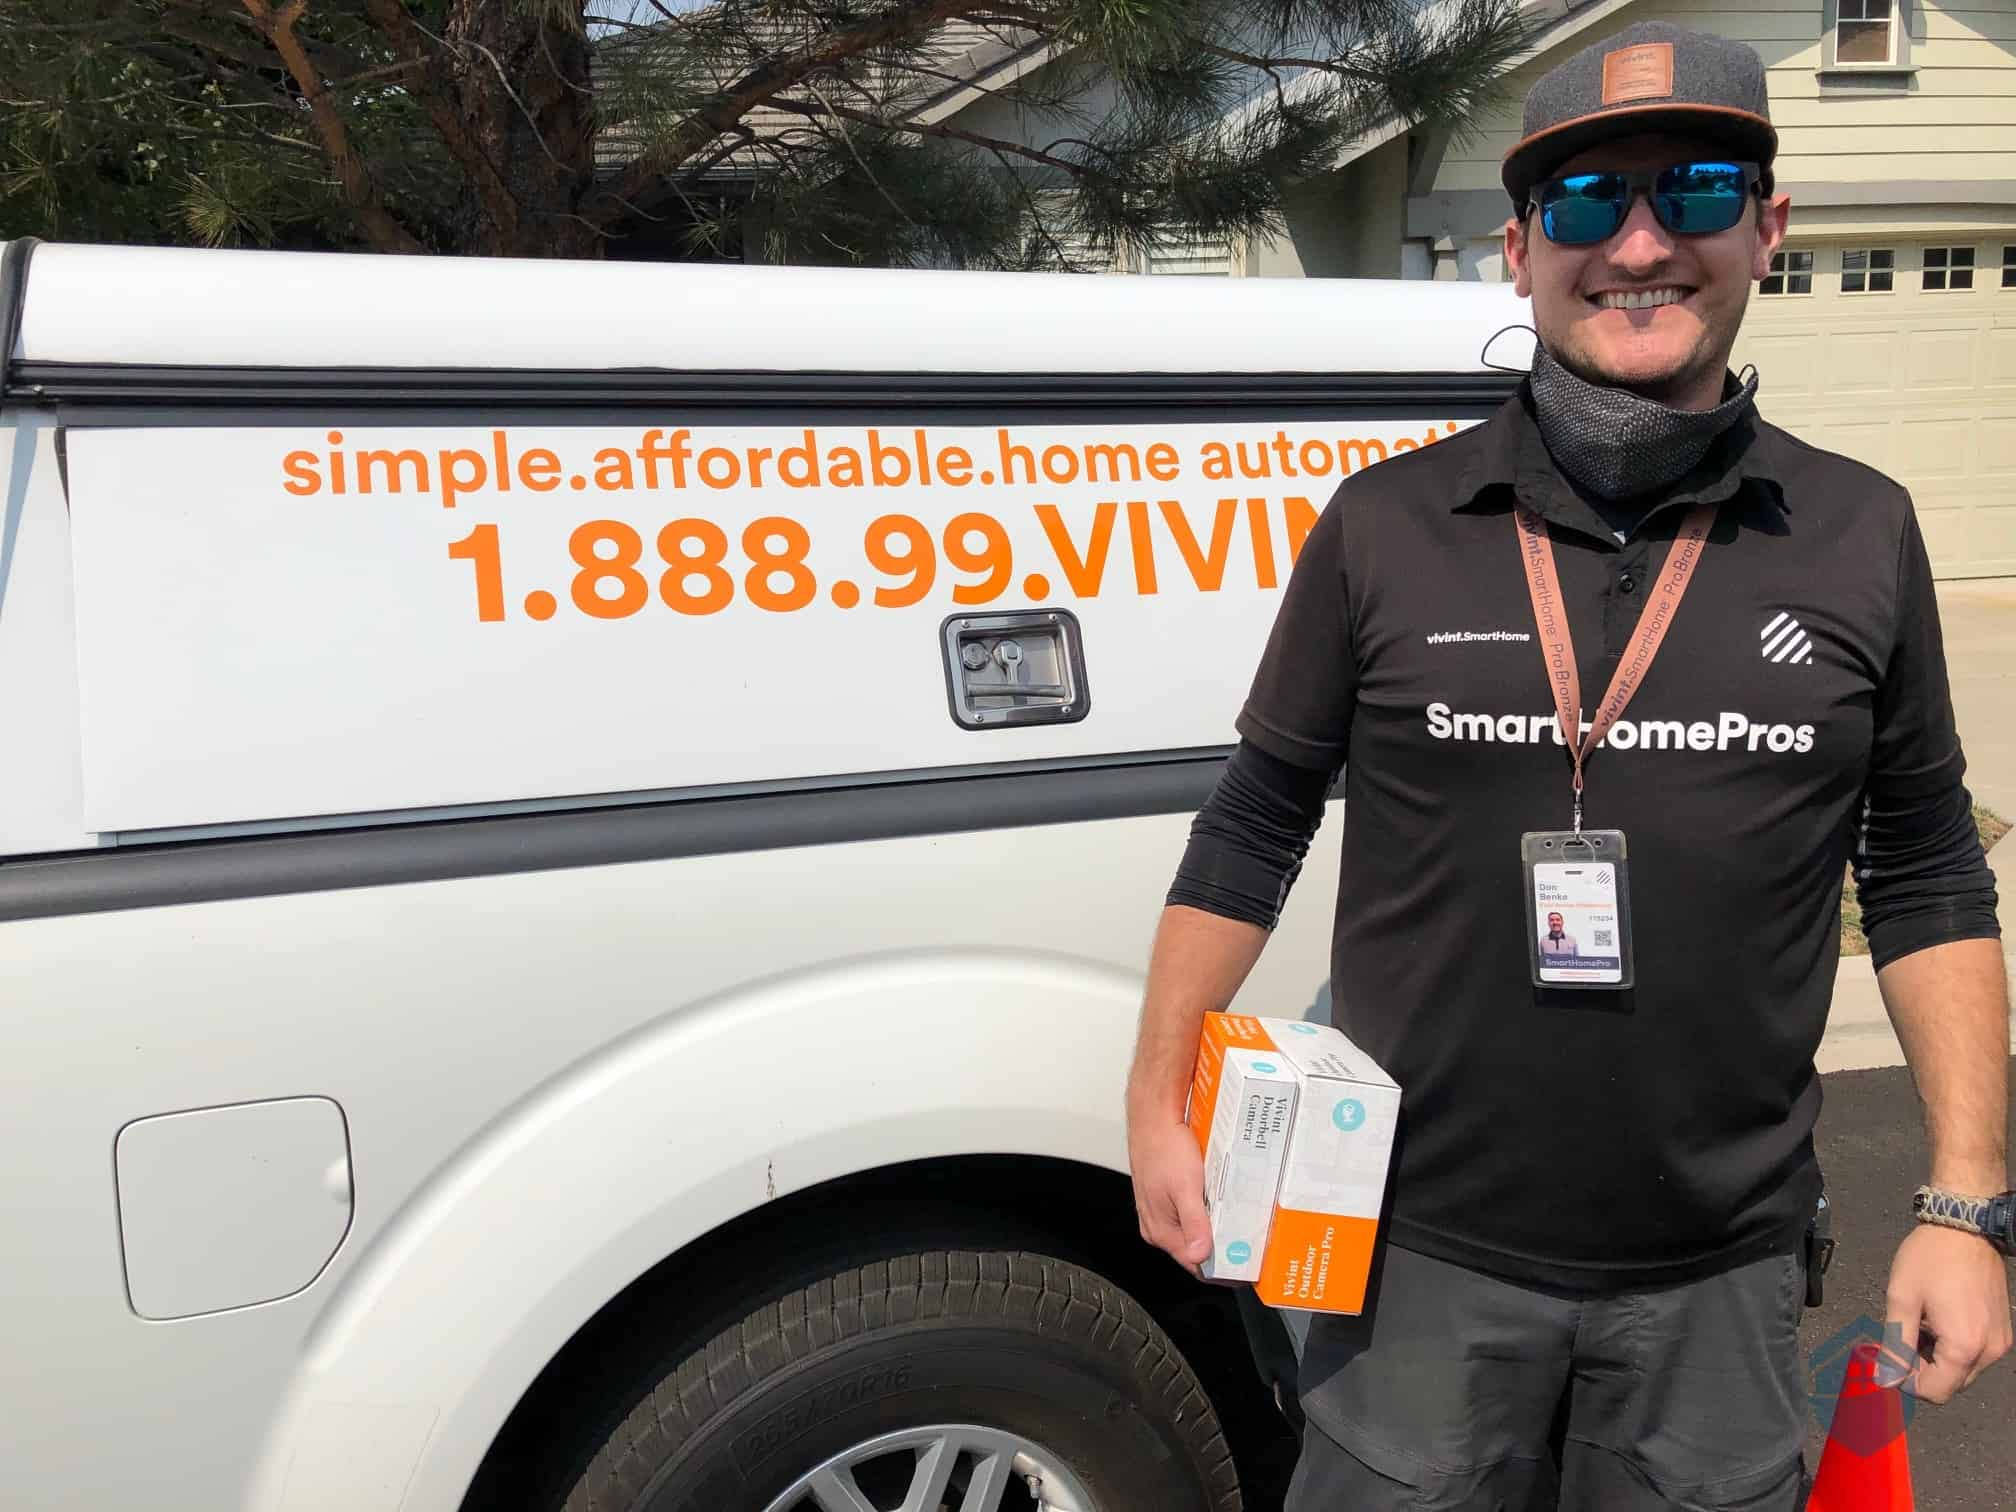 Don, our Smart Home Professional from Vivint